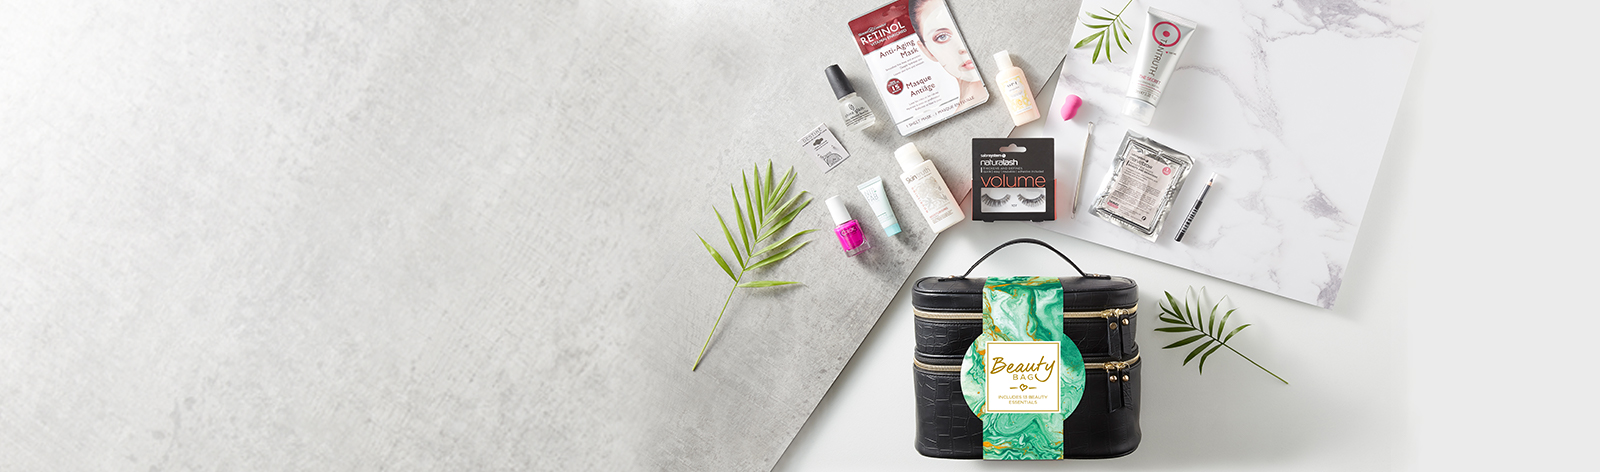 Free Beauty Bag when you spend €50 on Beauty and Nails